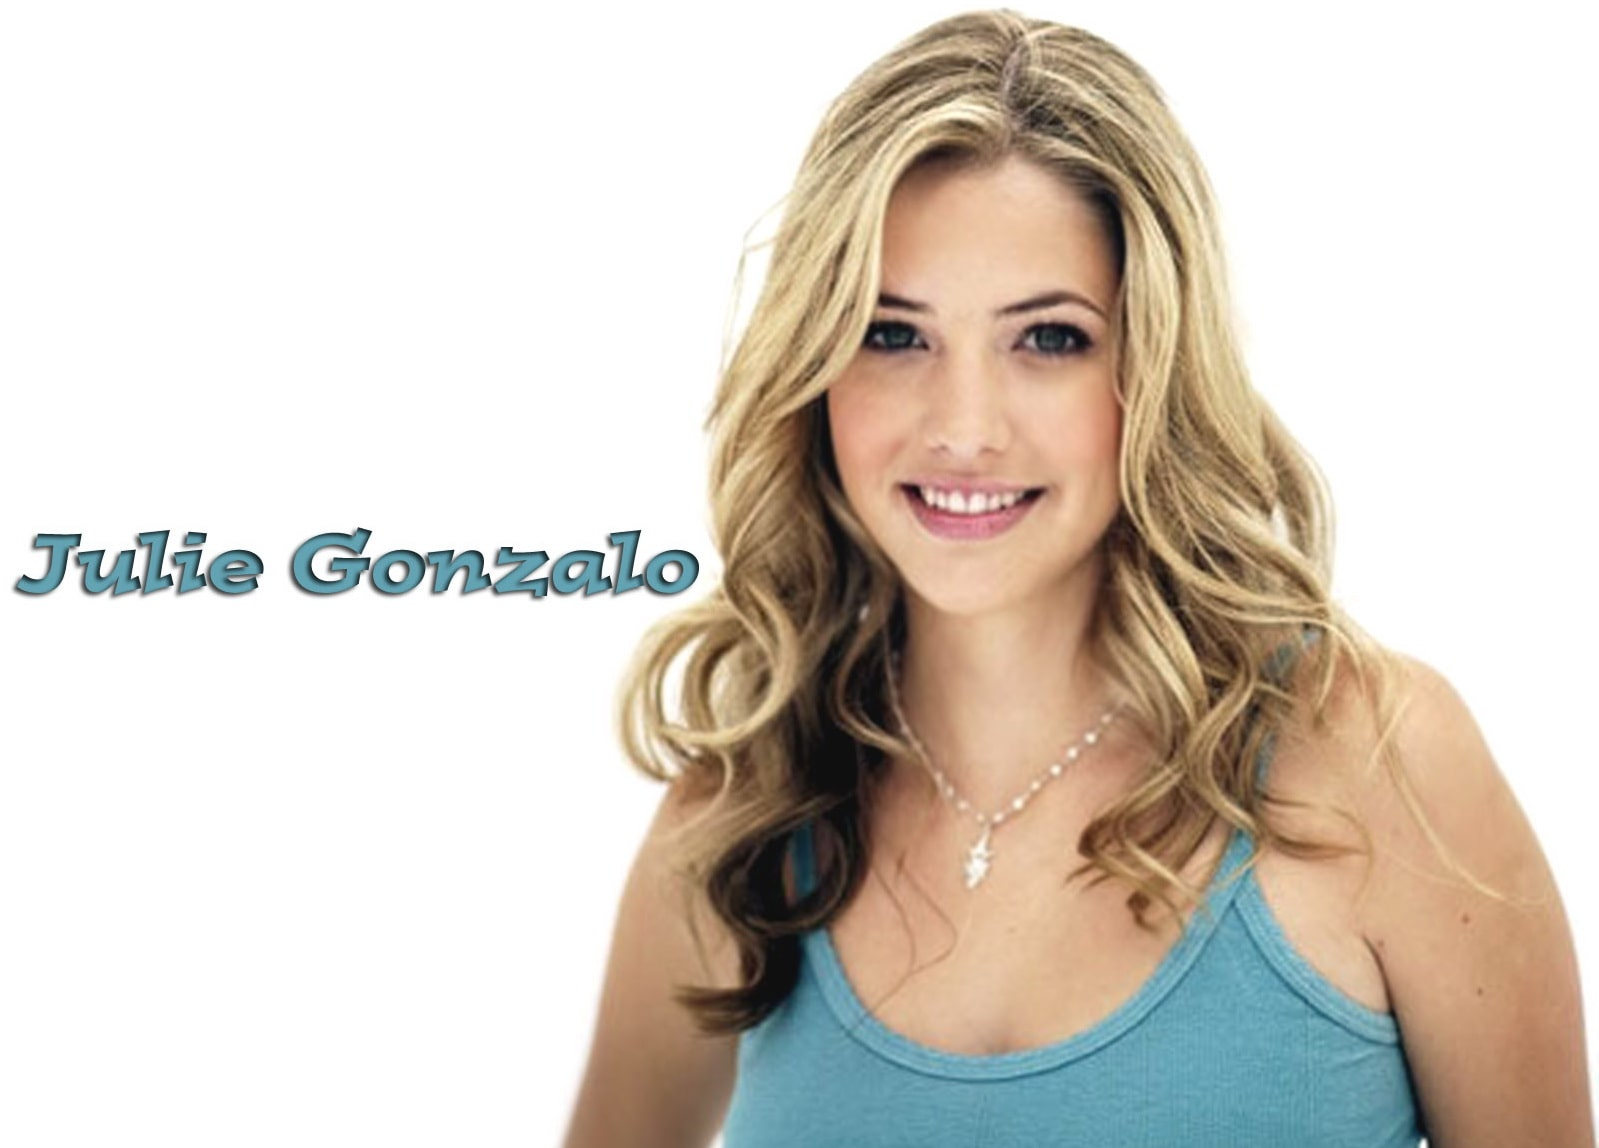 Julie Gonzalo Widescreen